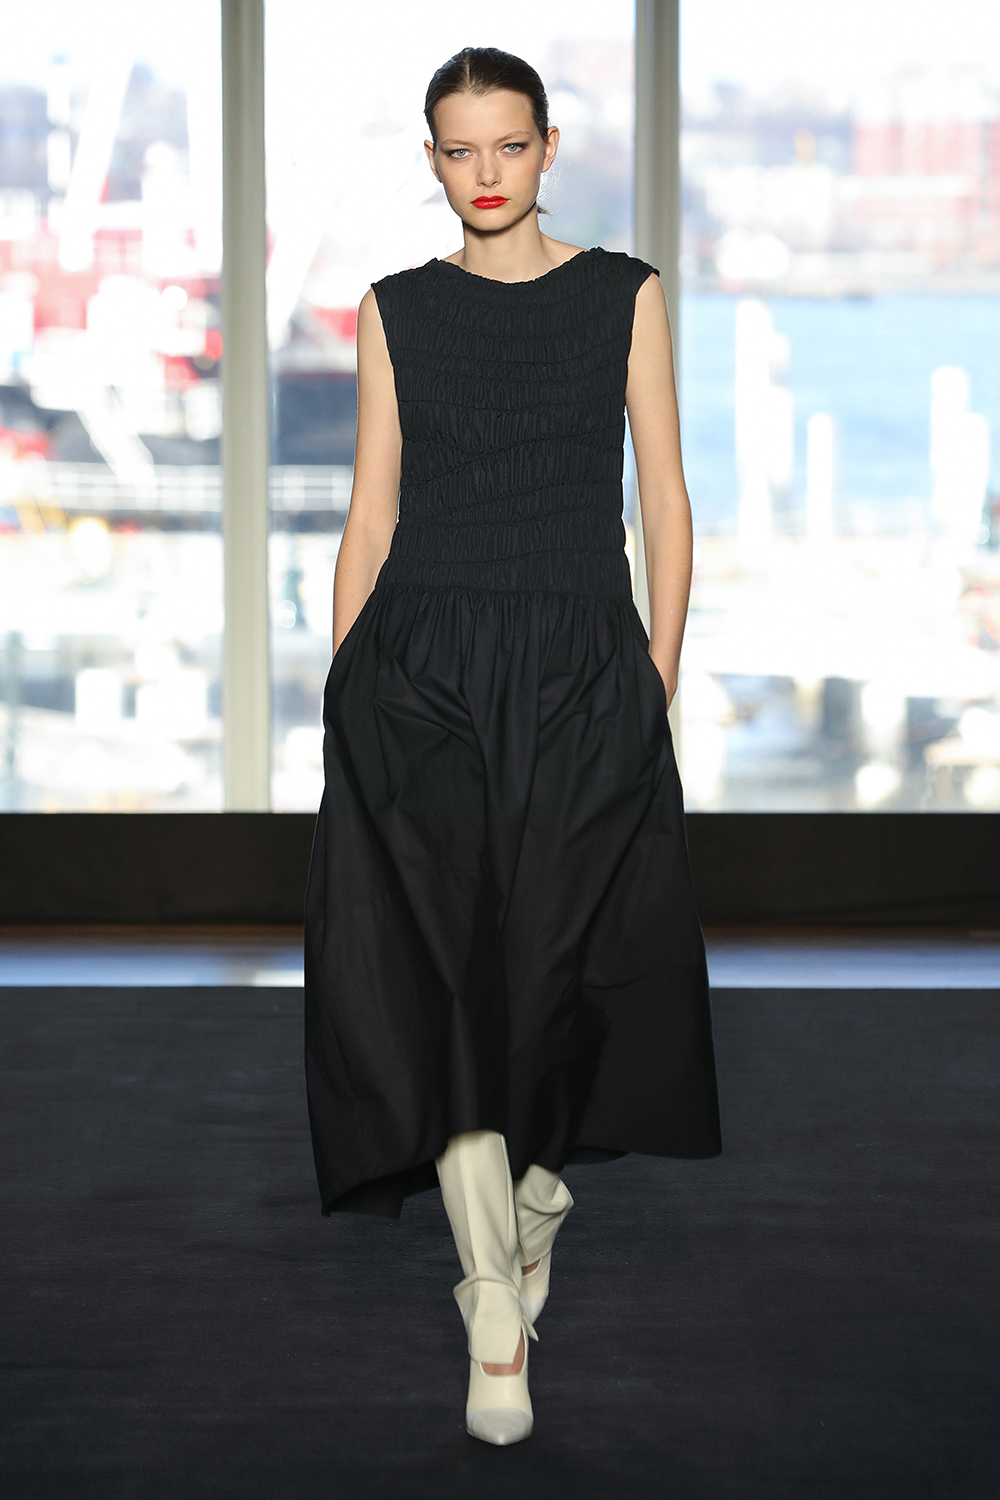 Look 7 Navy engineered pleated cotton dress over white wool twill pant.